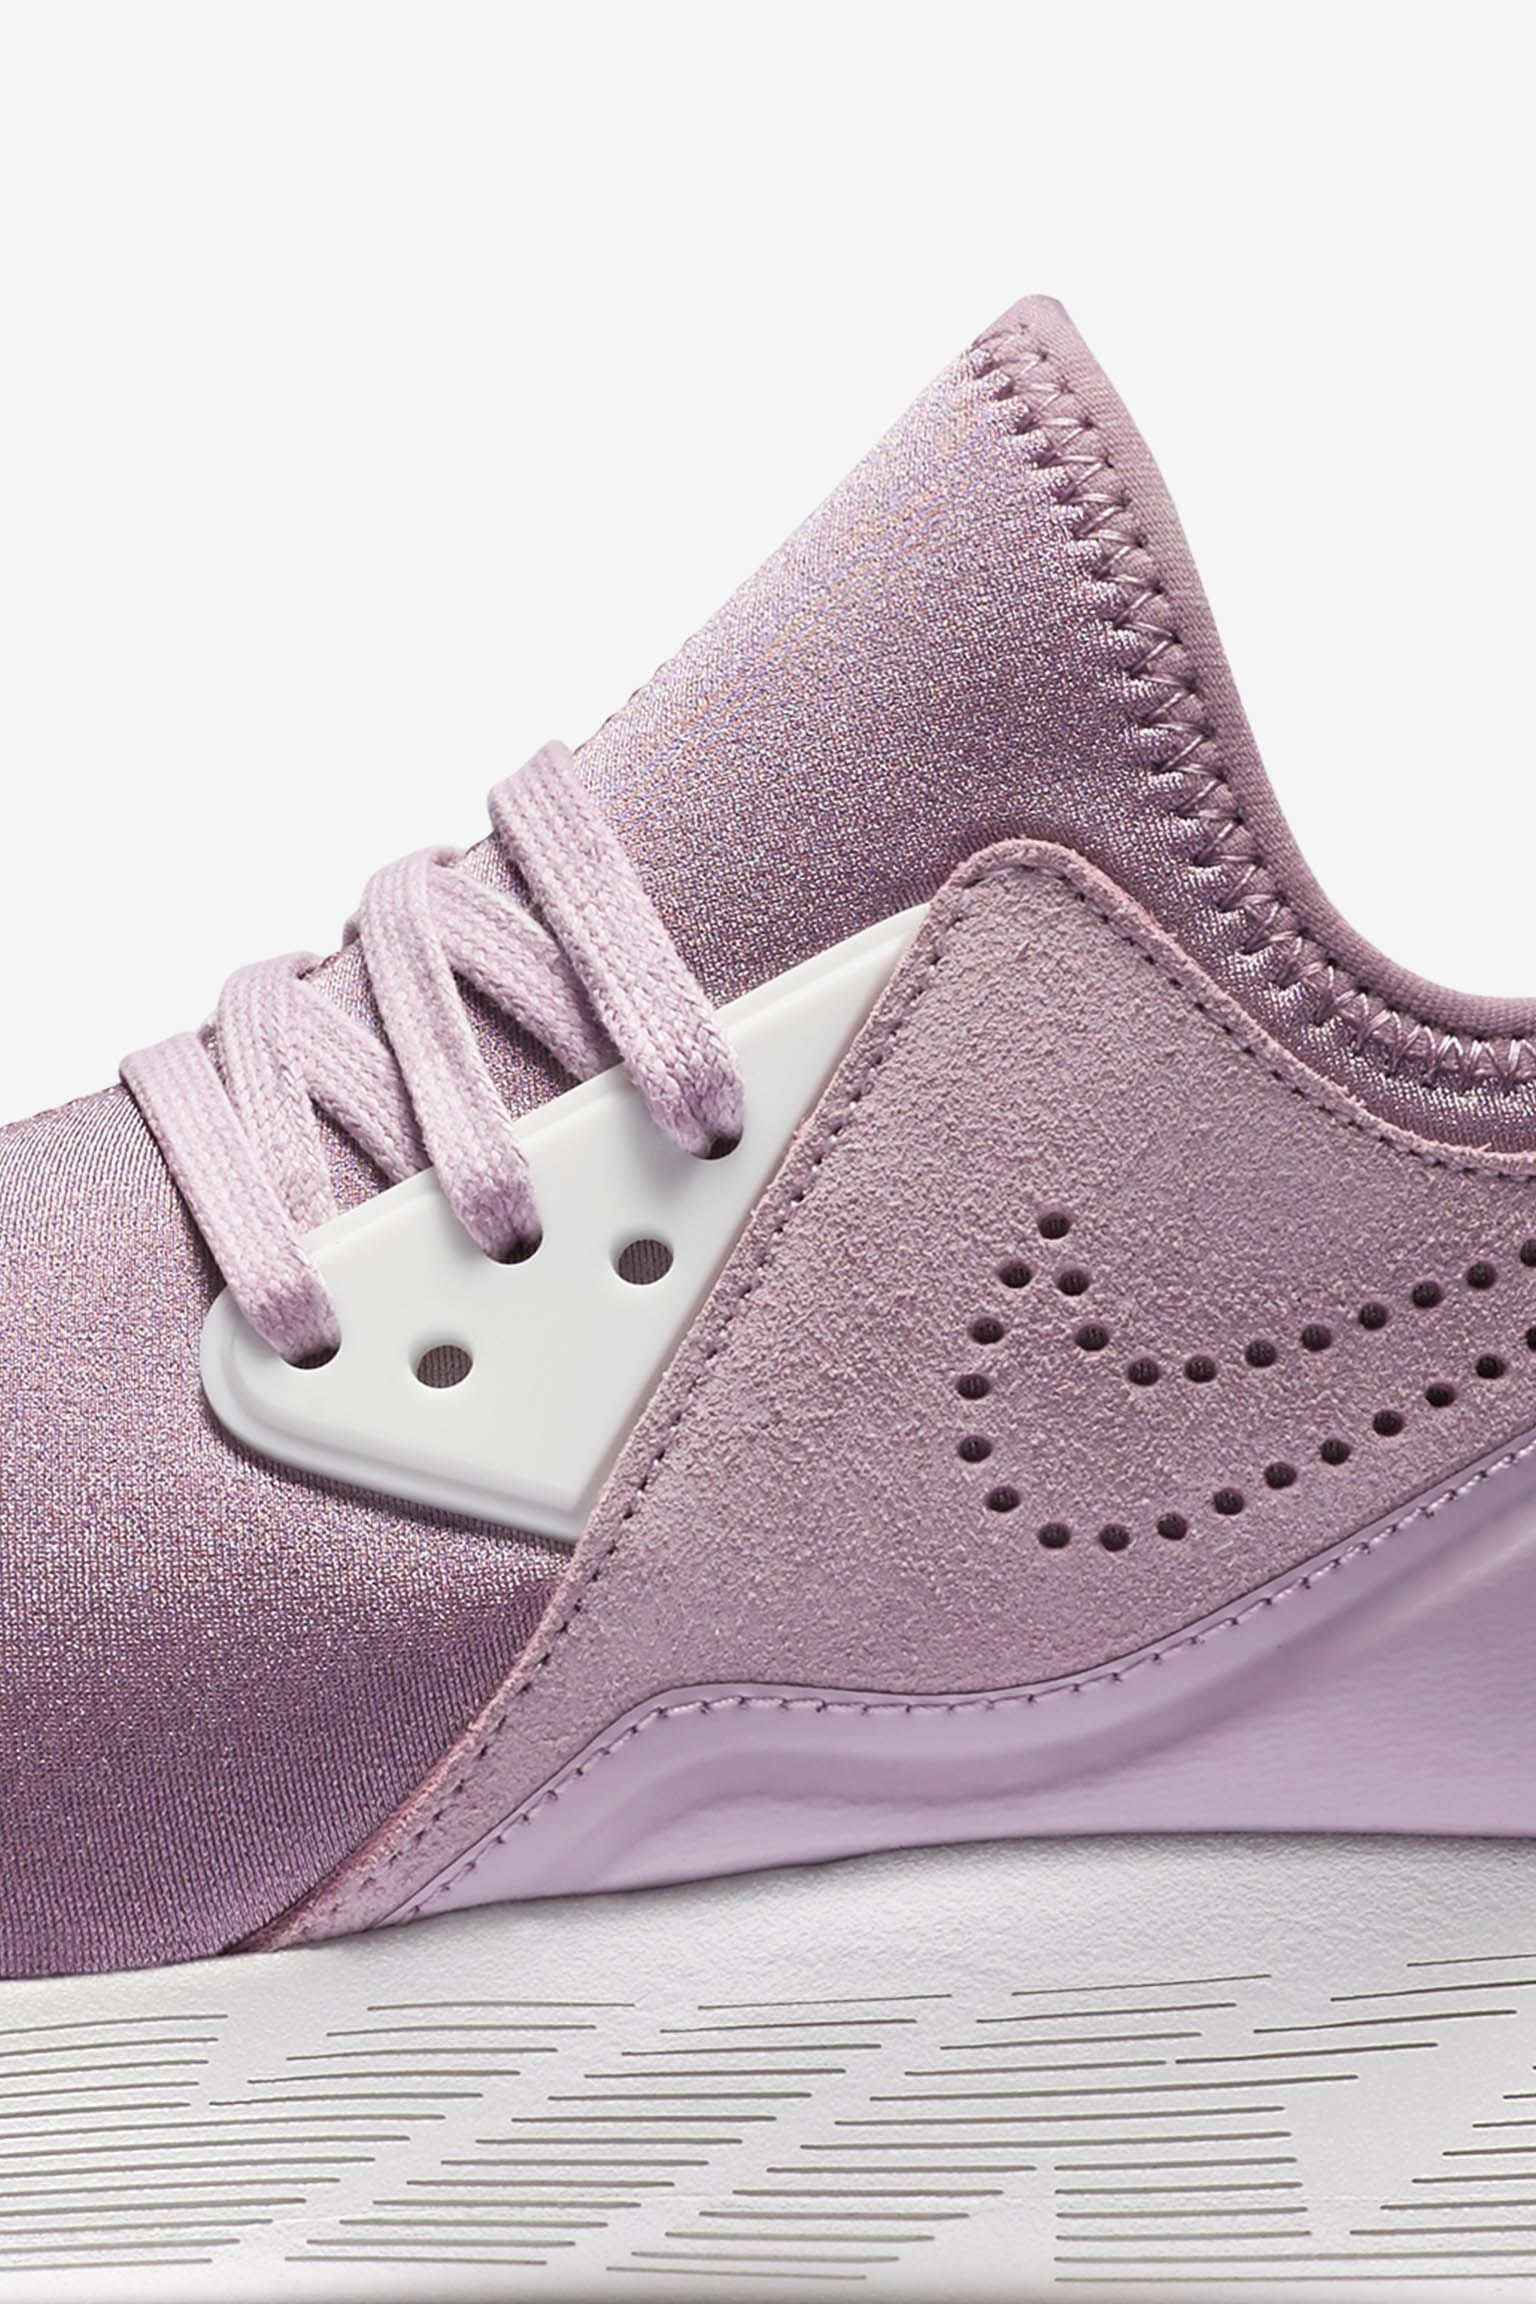 Women's Nike LunarCharge Premium 'Iced Lilac'